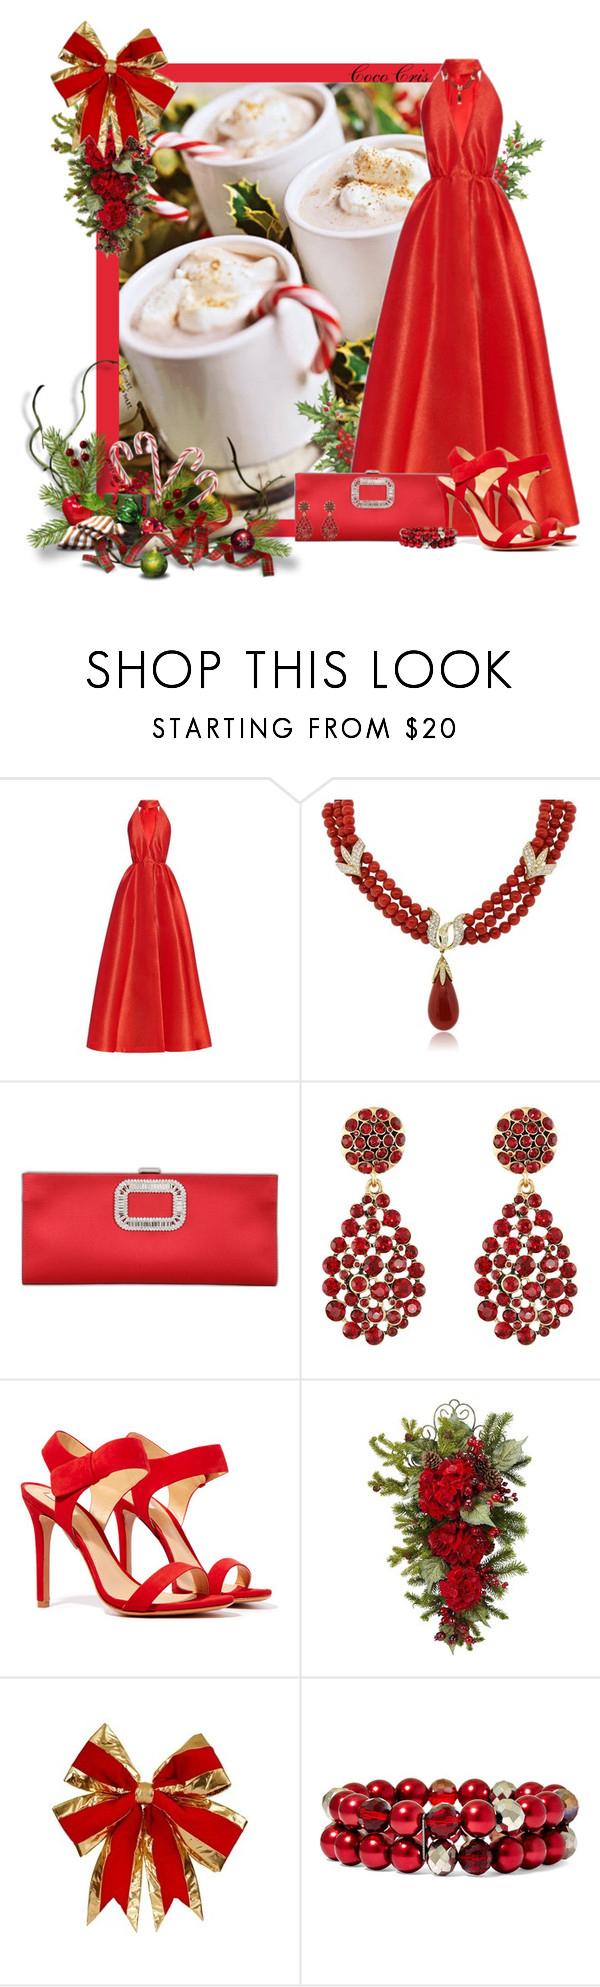 """""""hot wintery drinks"""" by mscococris ❤ liked on Polyvore featuring Emilia Wickstead, Roger Vivier, Oscar de la Renta, Schutz, Nearly Natural and Vieste Rosa"""